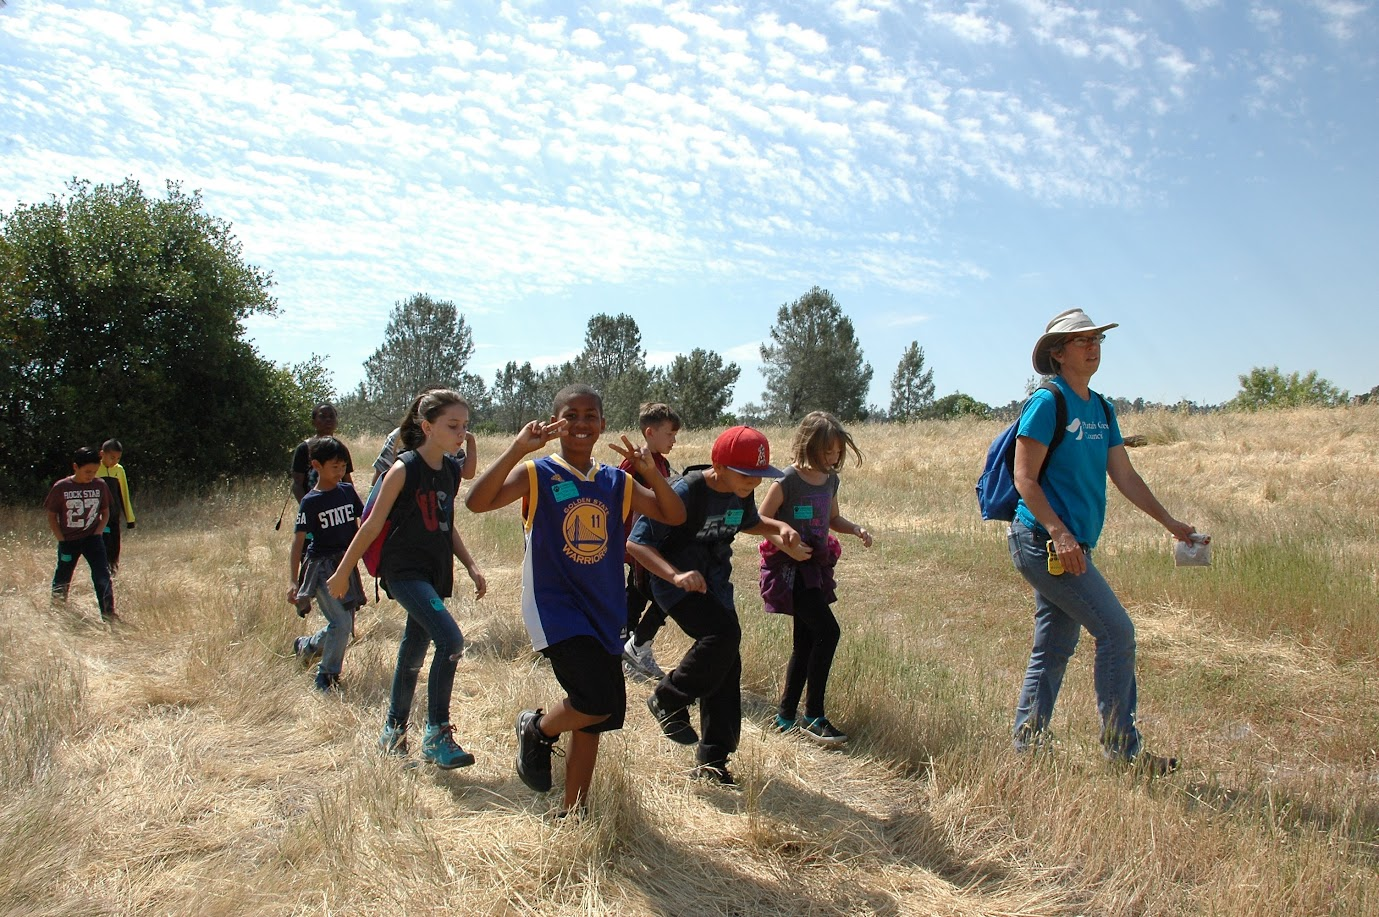 This image shows a woman leading a group of students across a grassy hill.